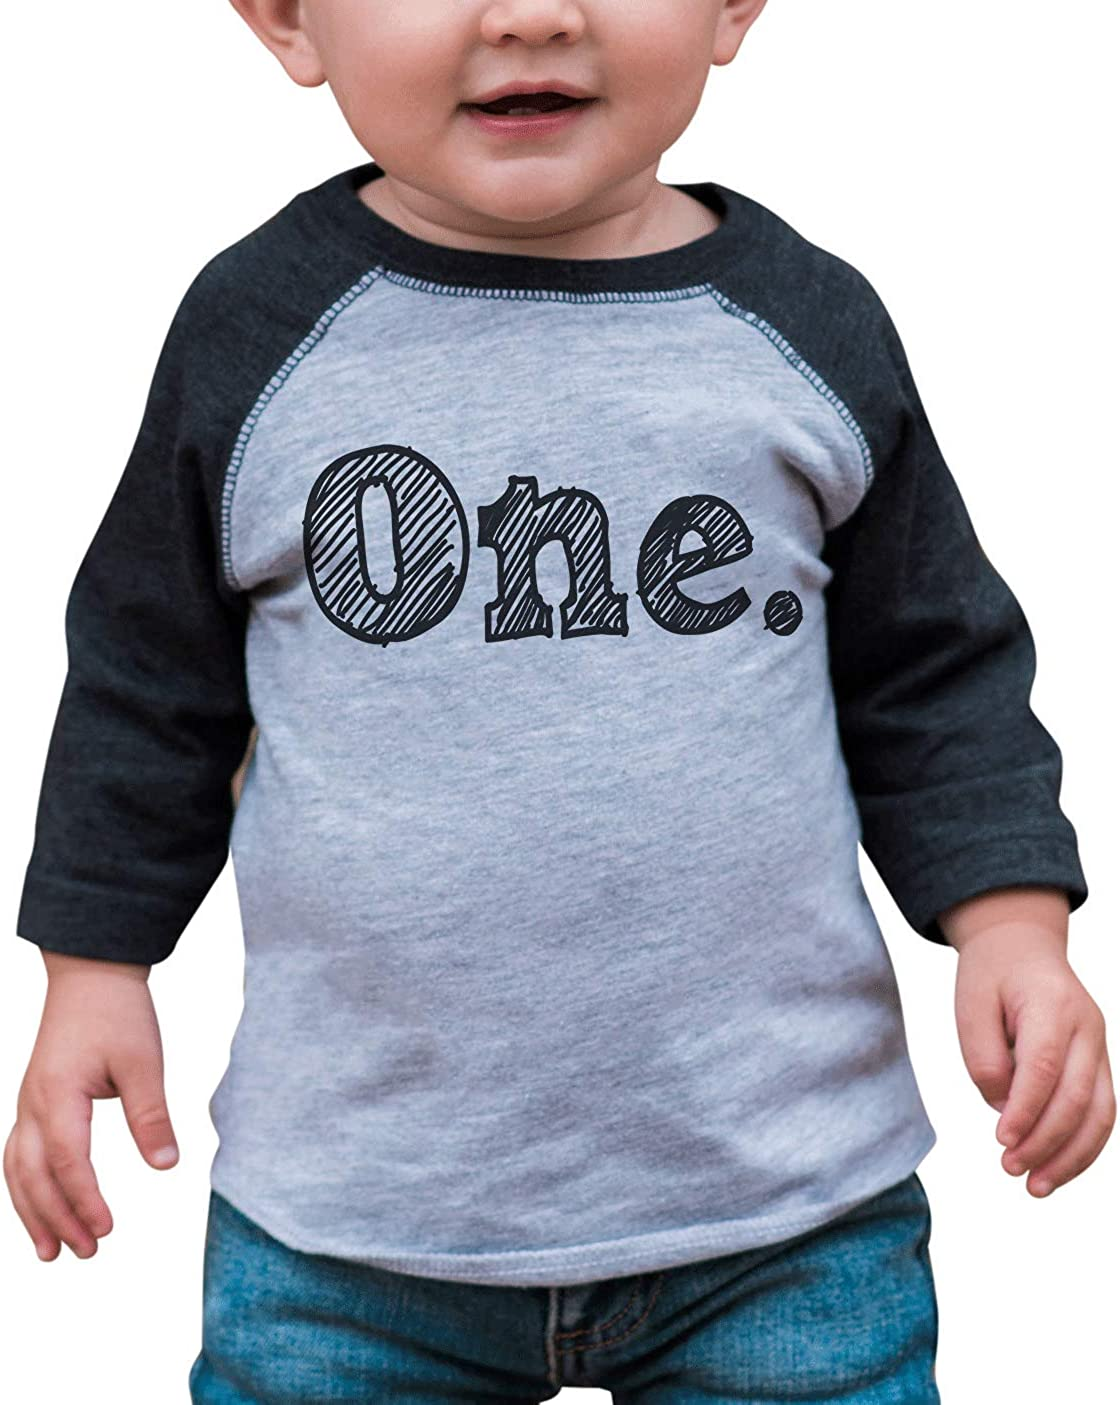 7 ate 9 Apparel Boy's One 1st 1 First Birthday Sketch Tee